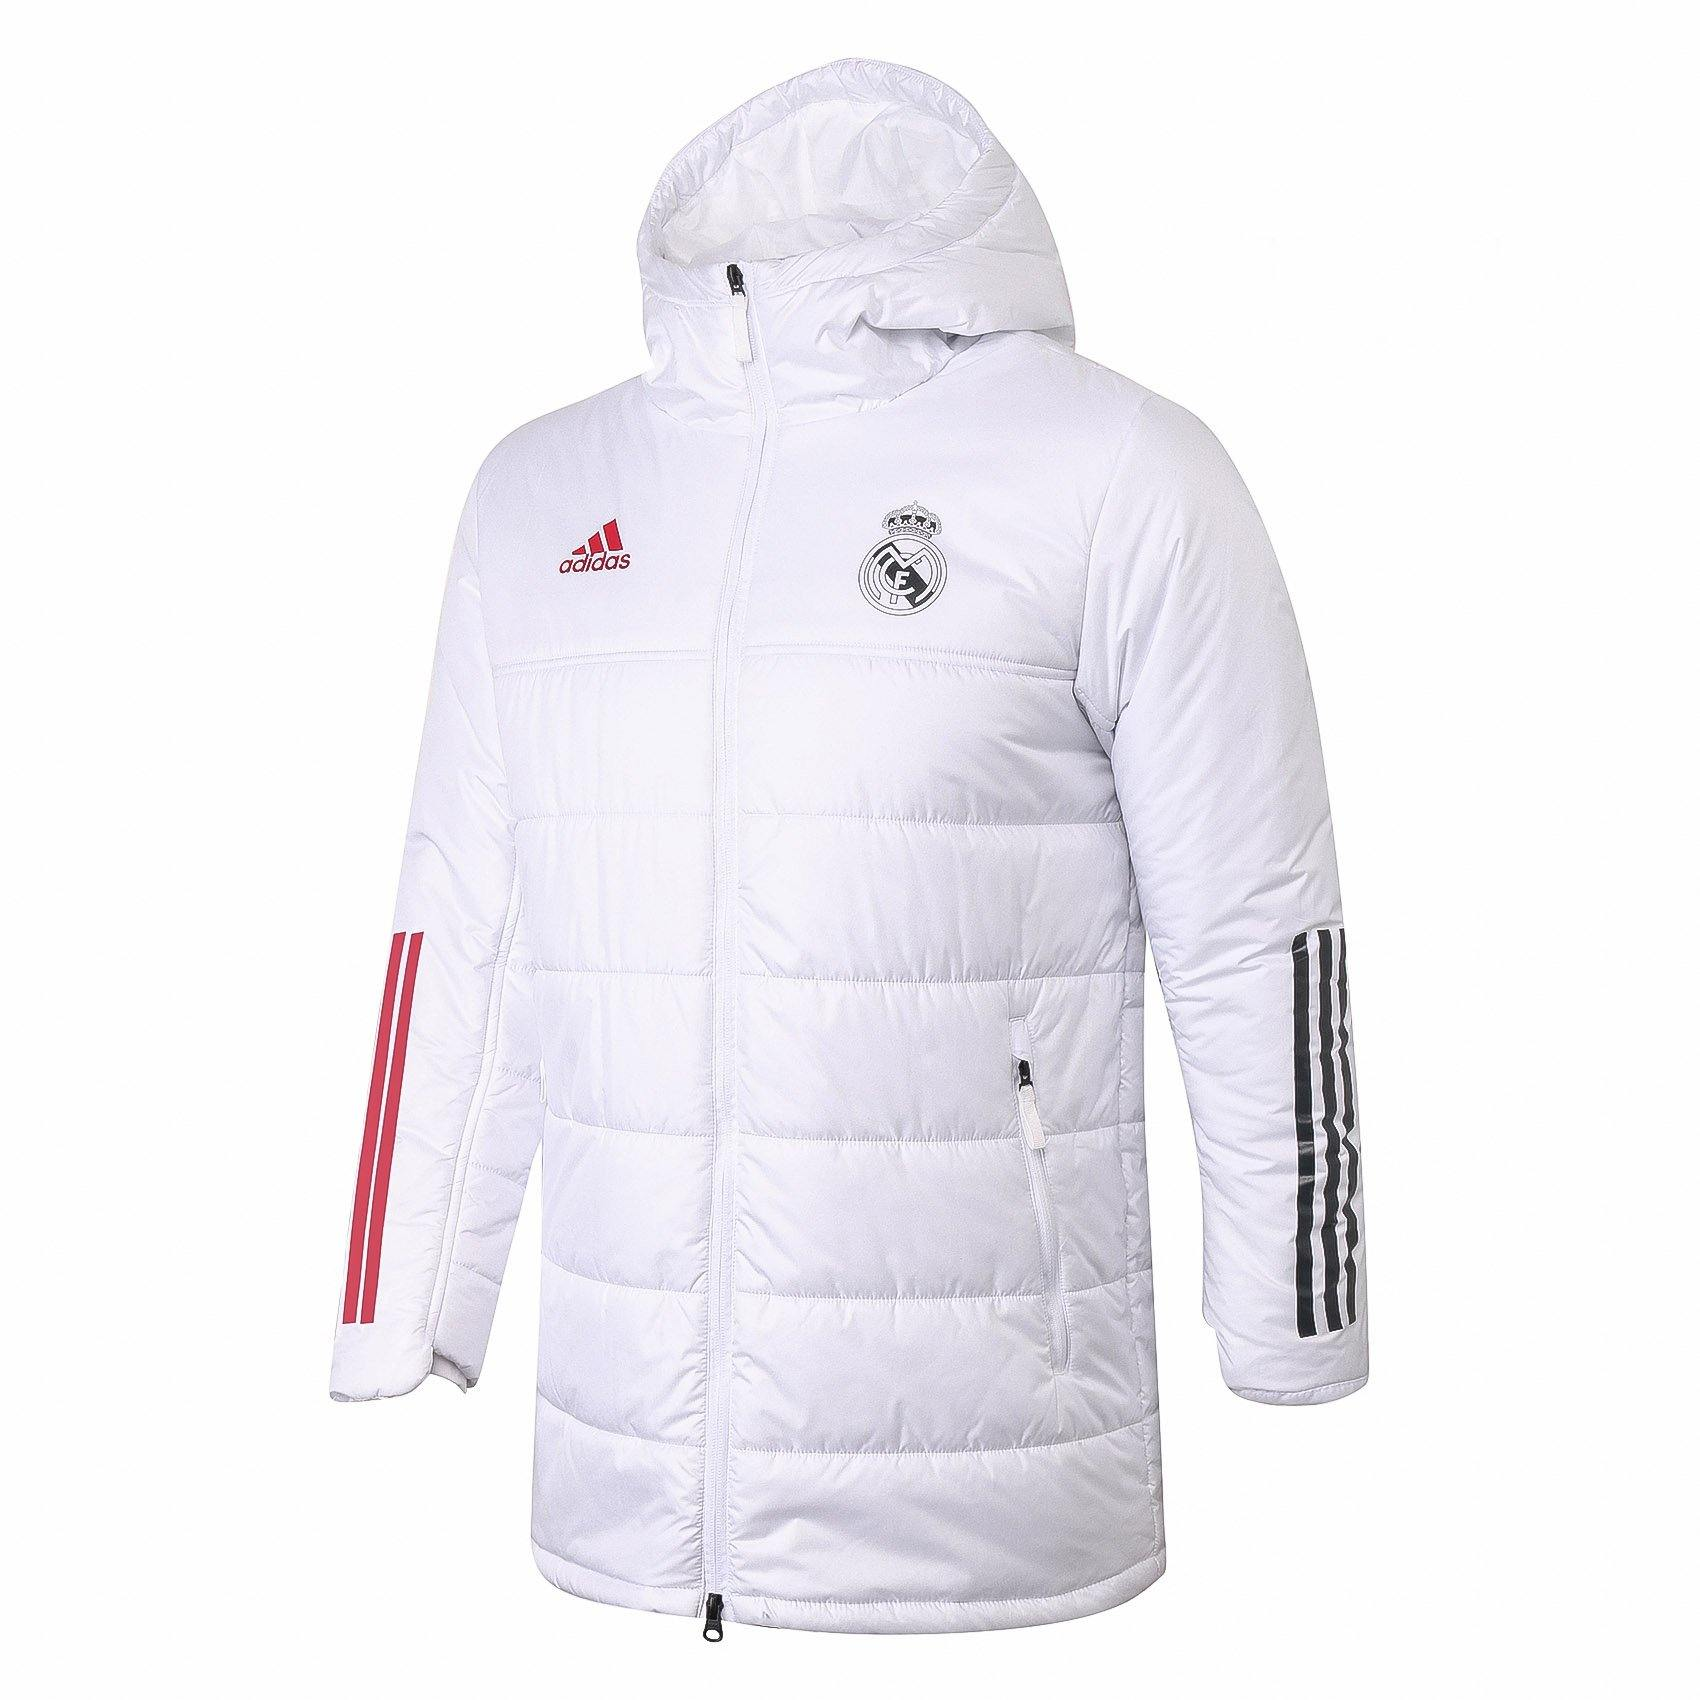 Doudoune Real Madrid Adidas Blanche / Rouge 2021 freeshipping - Foot Online